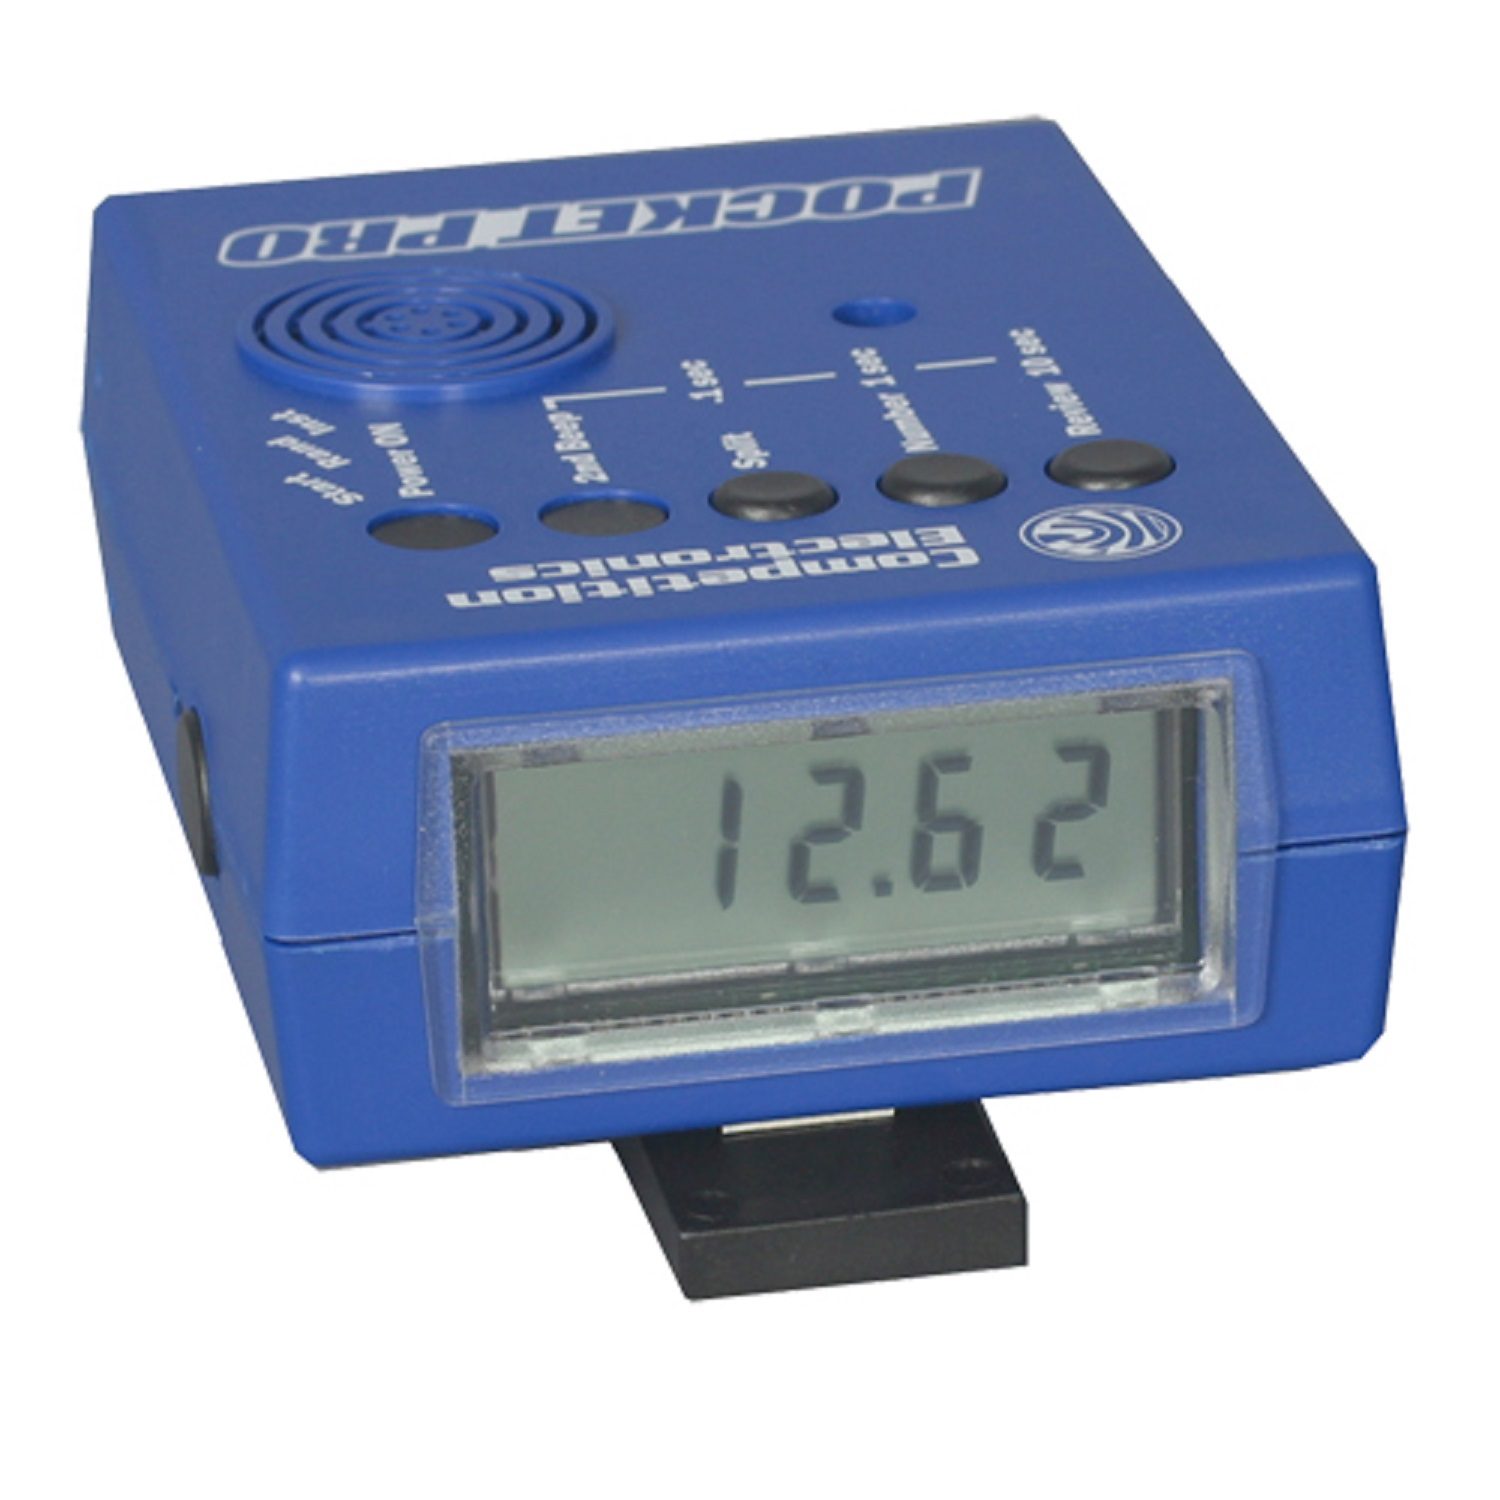 Competition Electronics Pocket Pro Timer, CEI-2800 by Competition Electronics